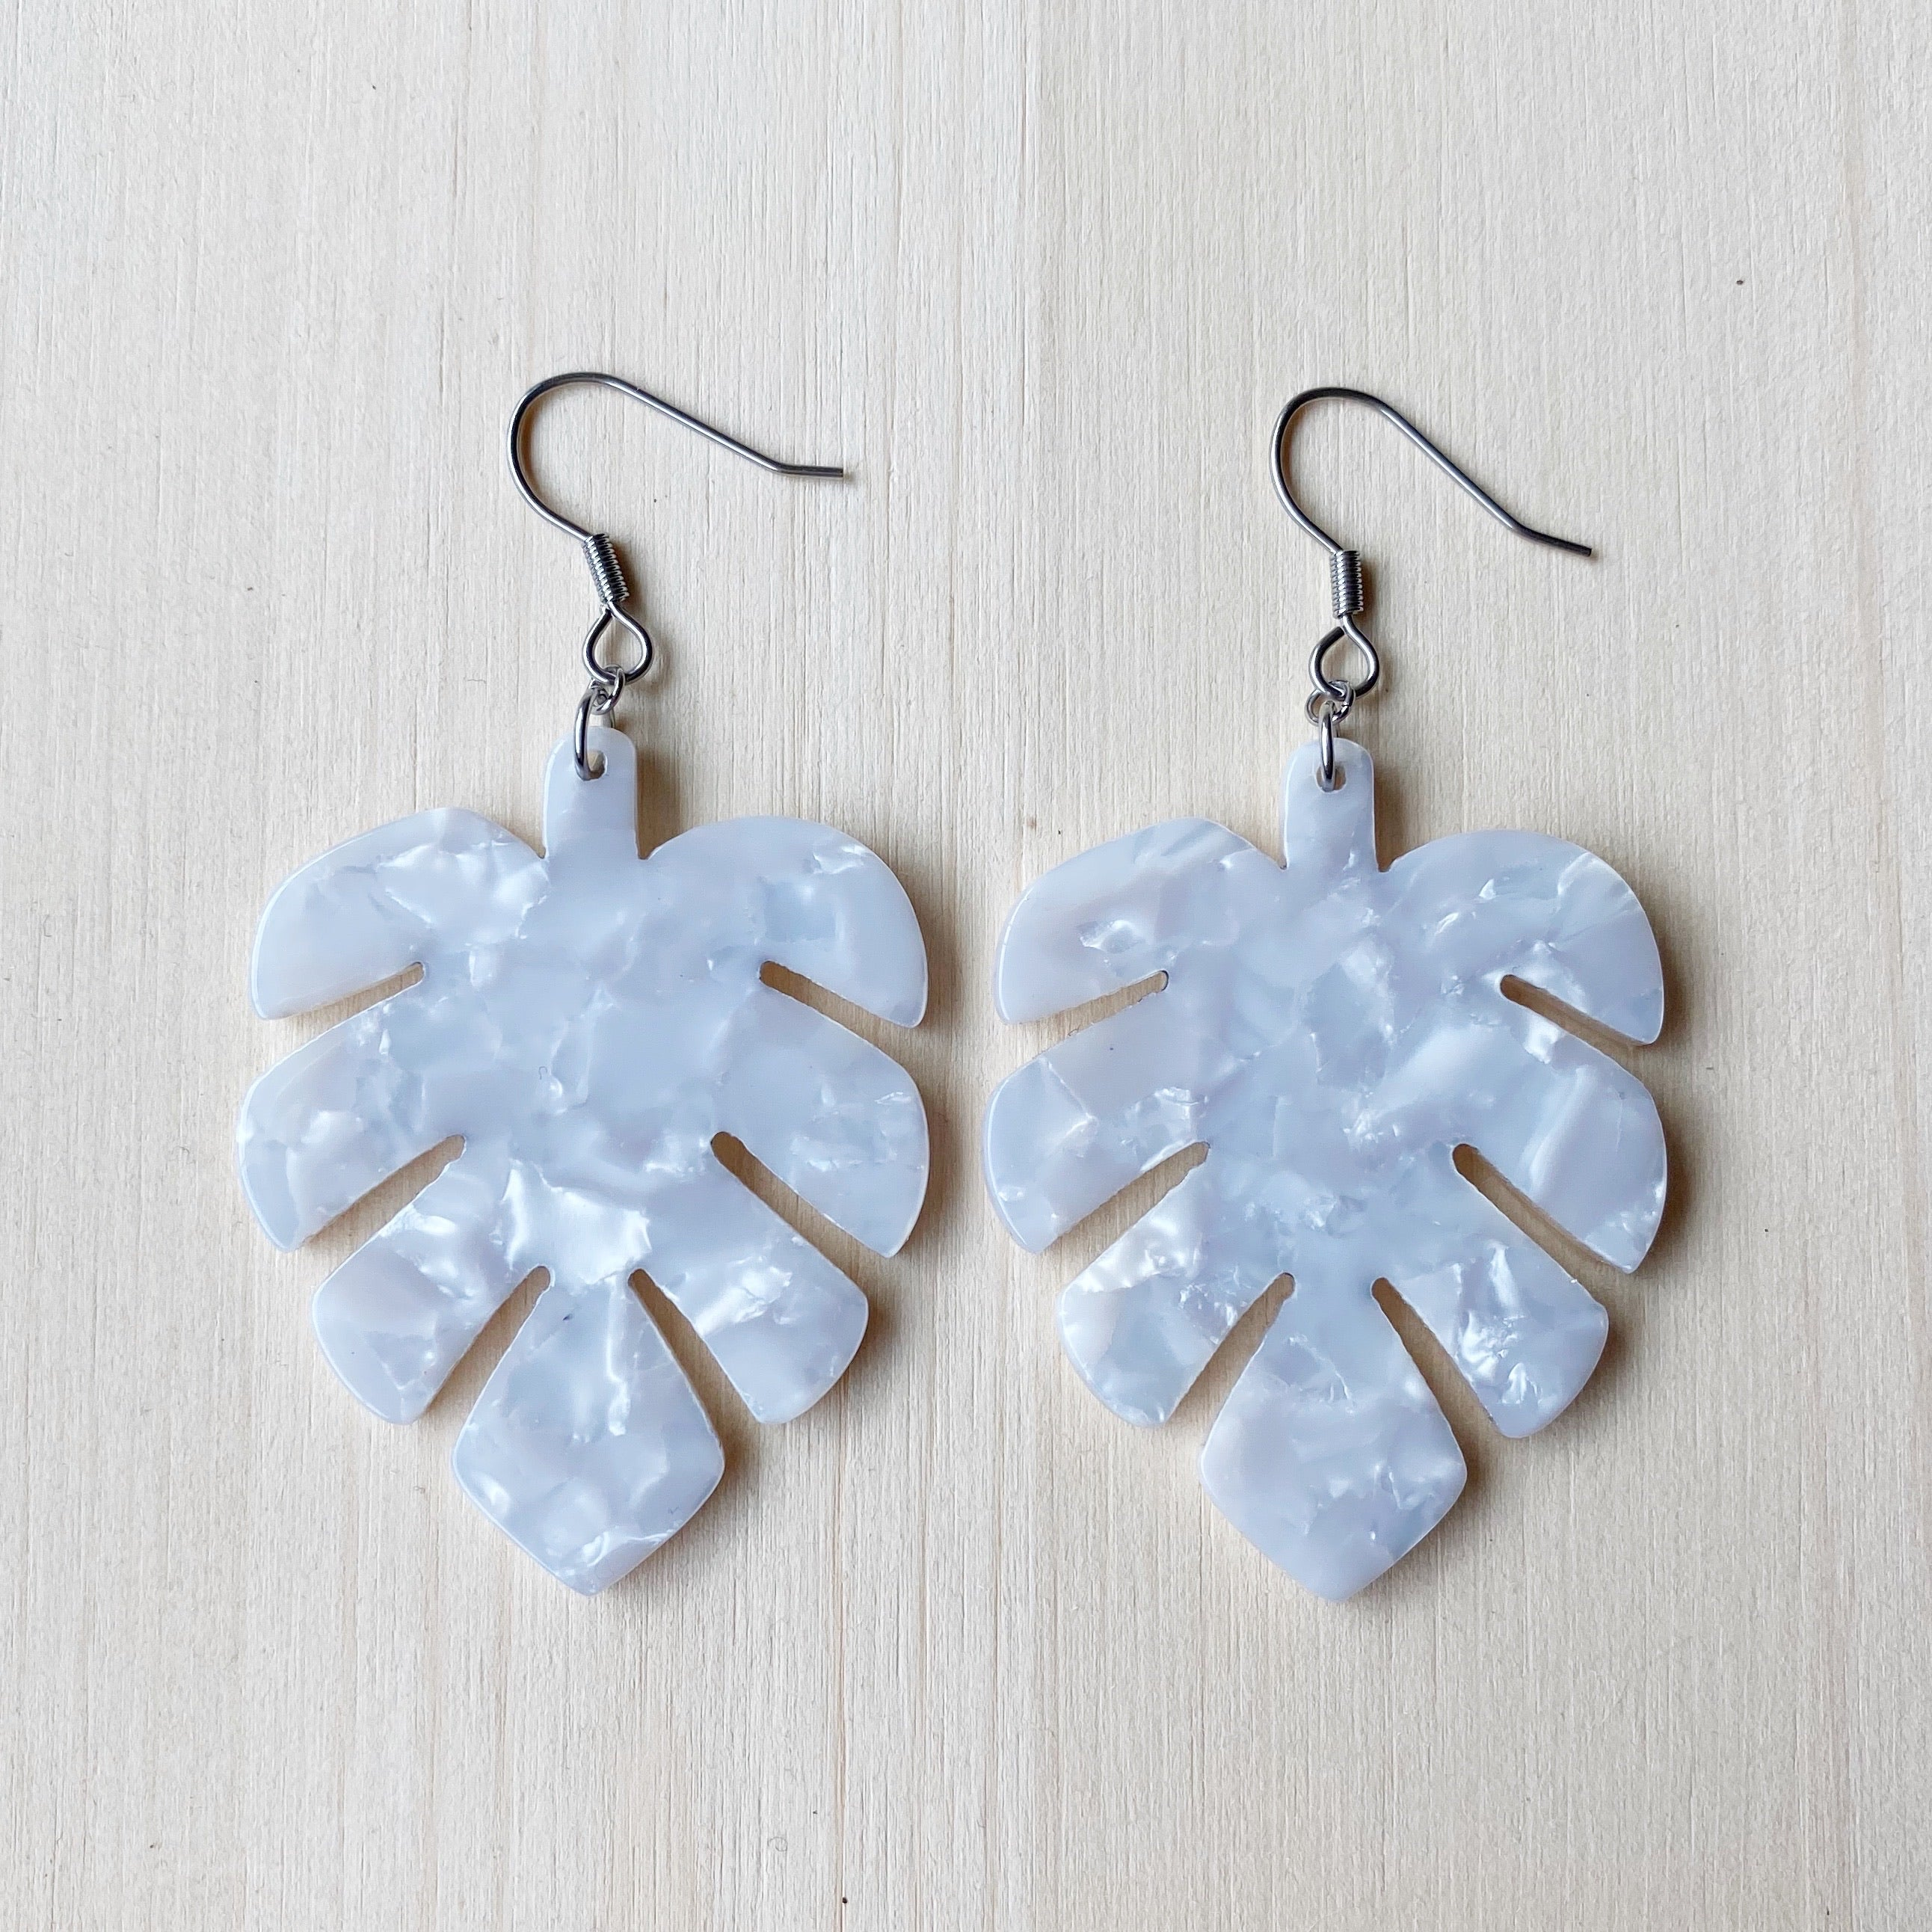 Monstera Acetate Earrings - White